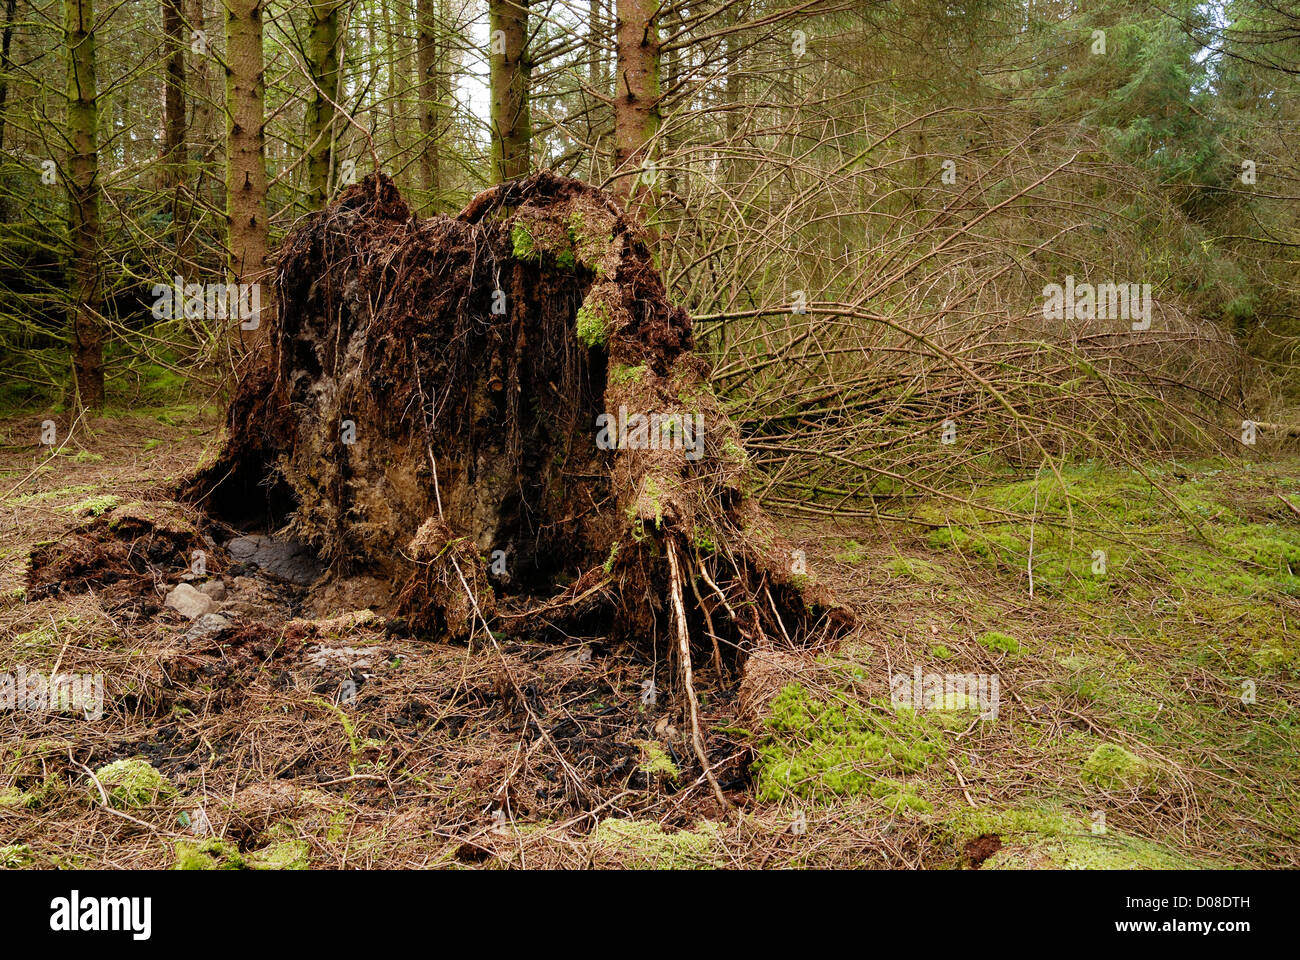 Pine tree blown over by wind due to stony soil not allowing roots to grow down into the earth. Stock Photo